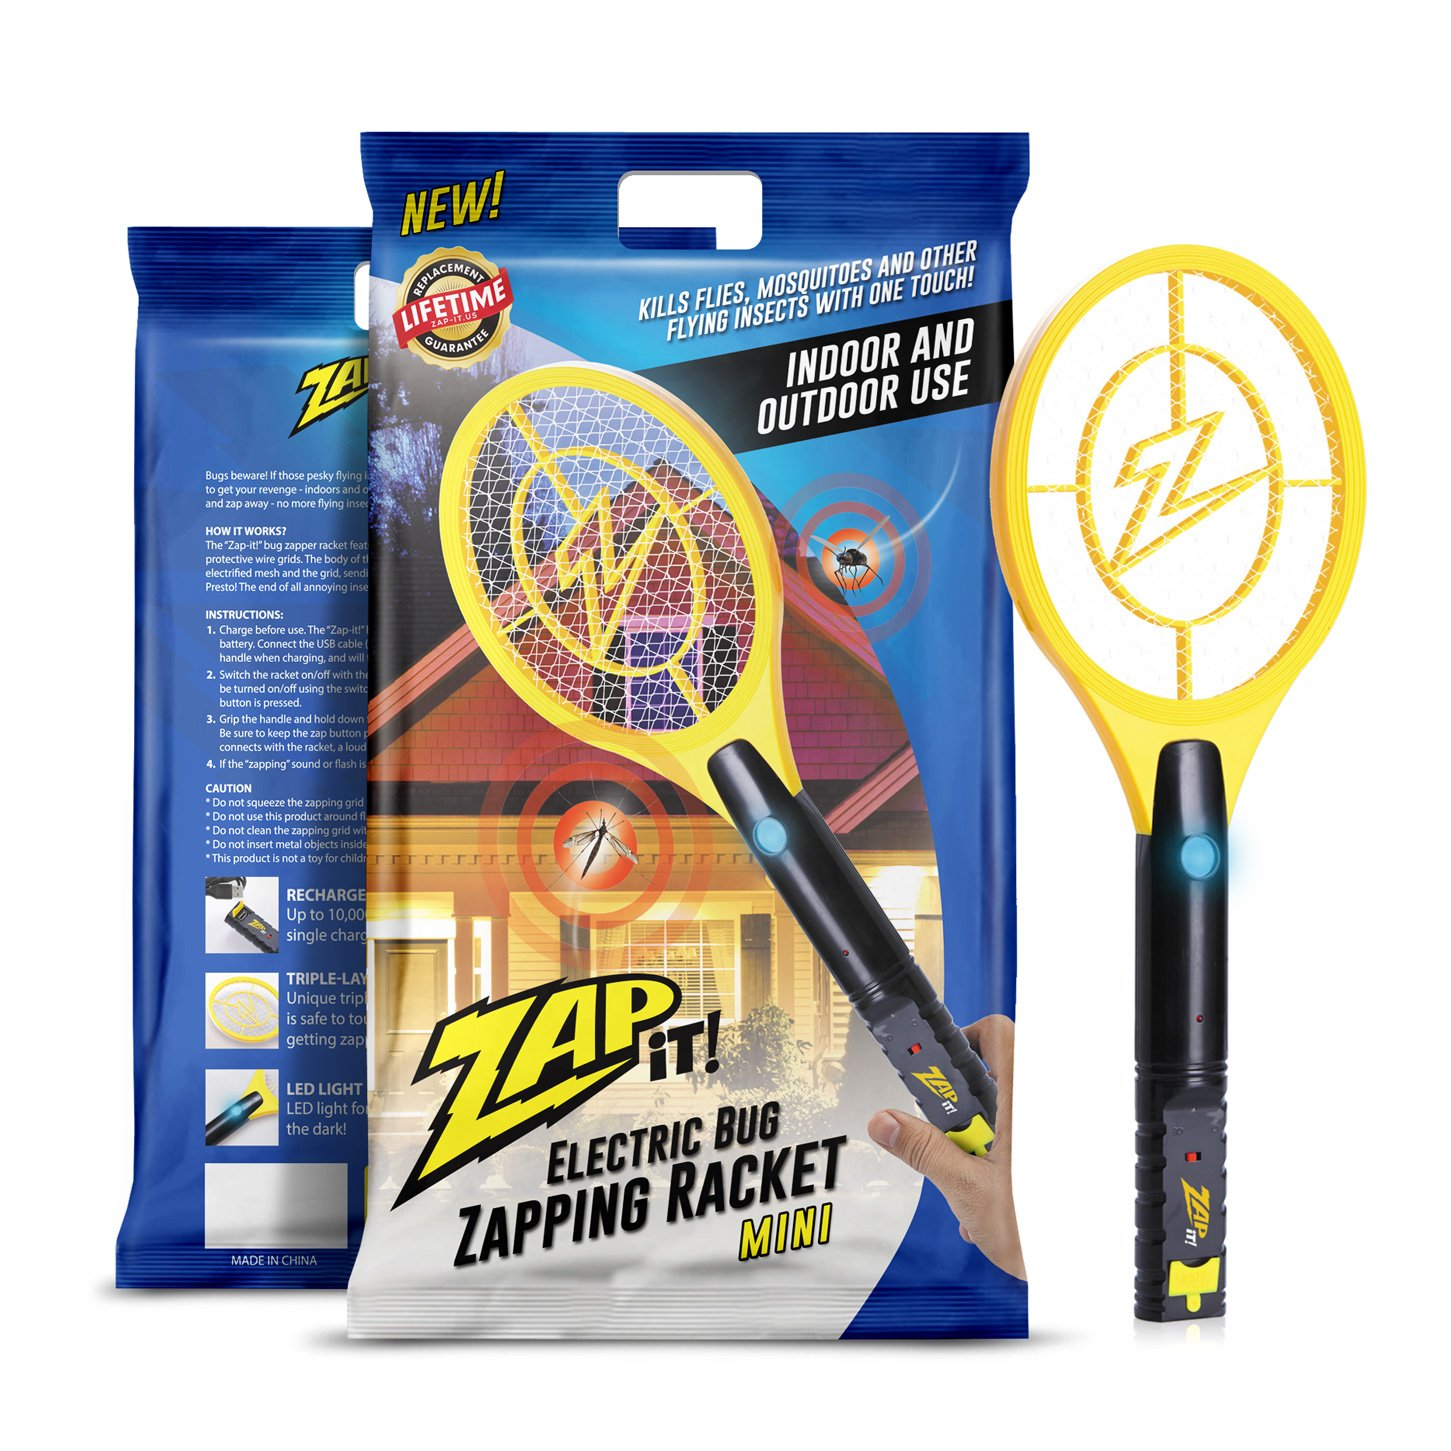 ZAP IT! Mini Bug Zapper - Rechargeable Mosquito, Fly Killer and Bug Zapper Racket - 4,000 Volt - USB Charging, Super-Bright LED Light to Zap in The Dark - Safe to Touch by ZAP IT!